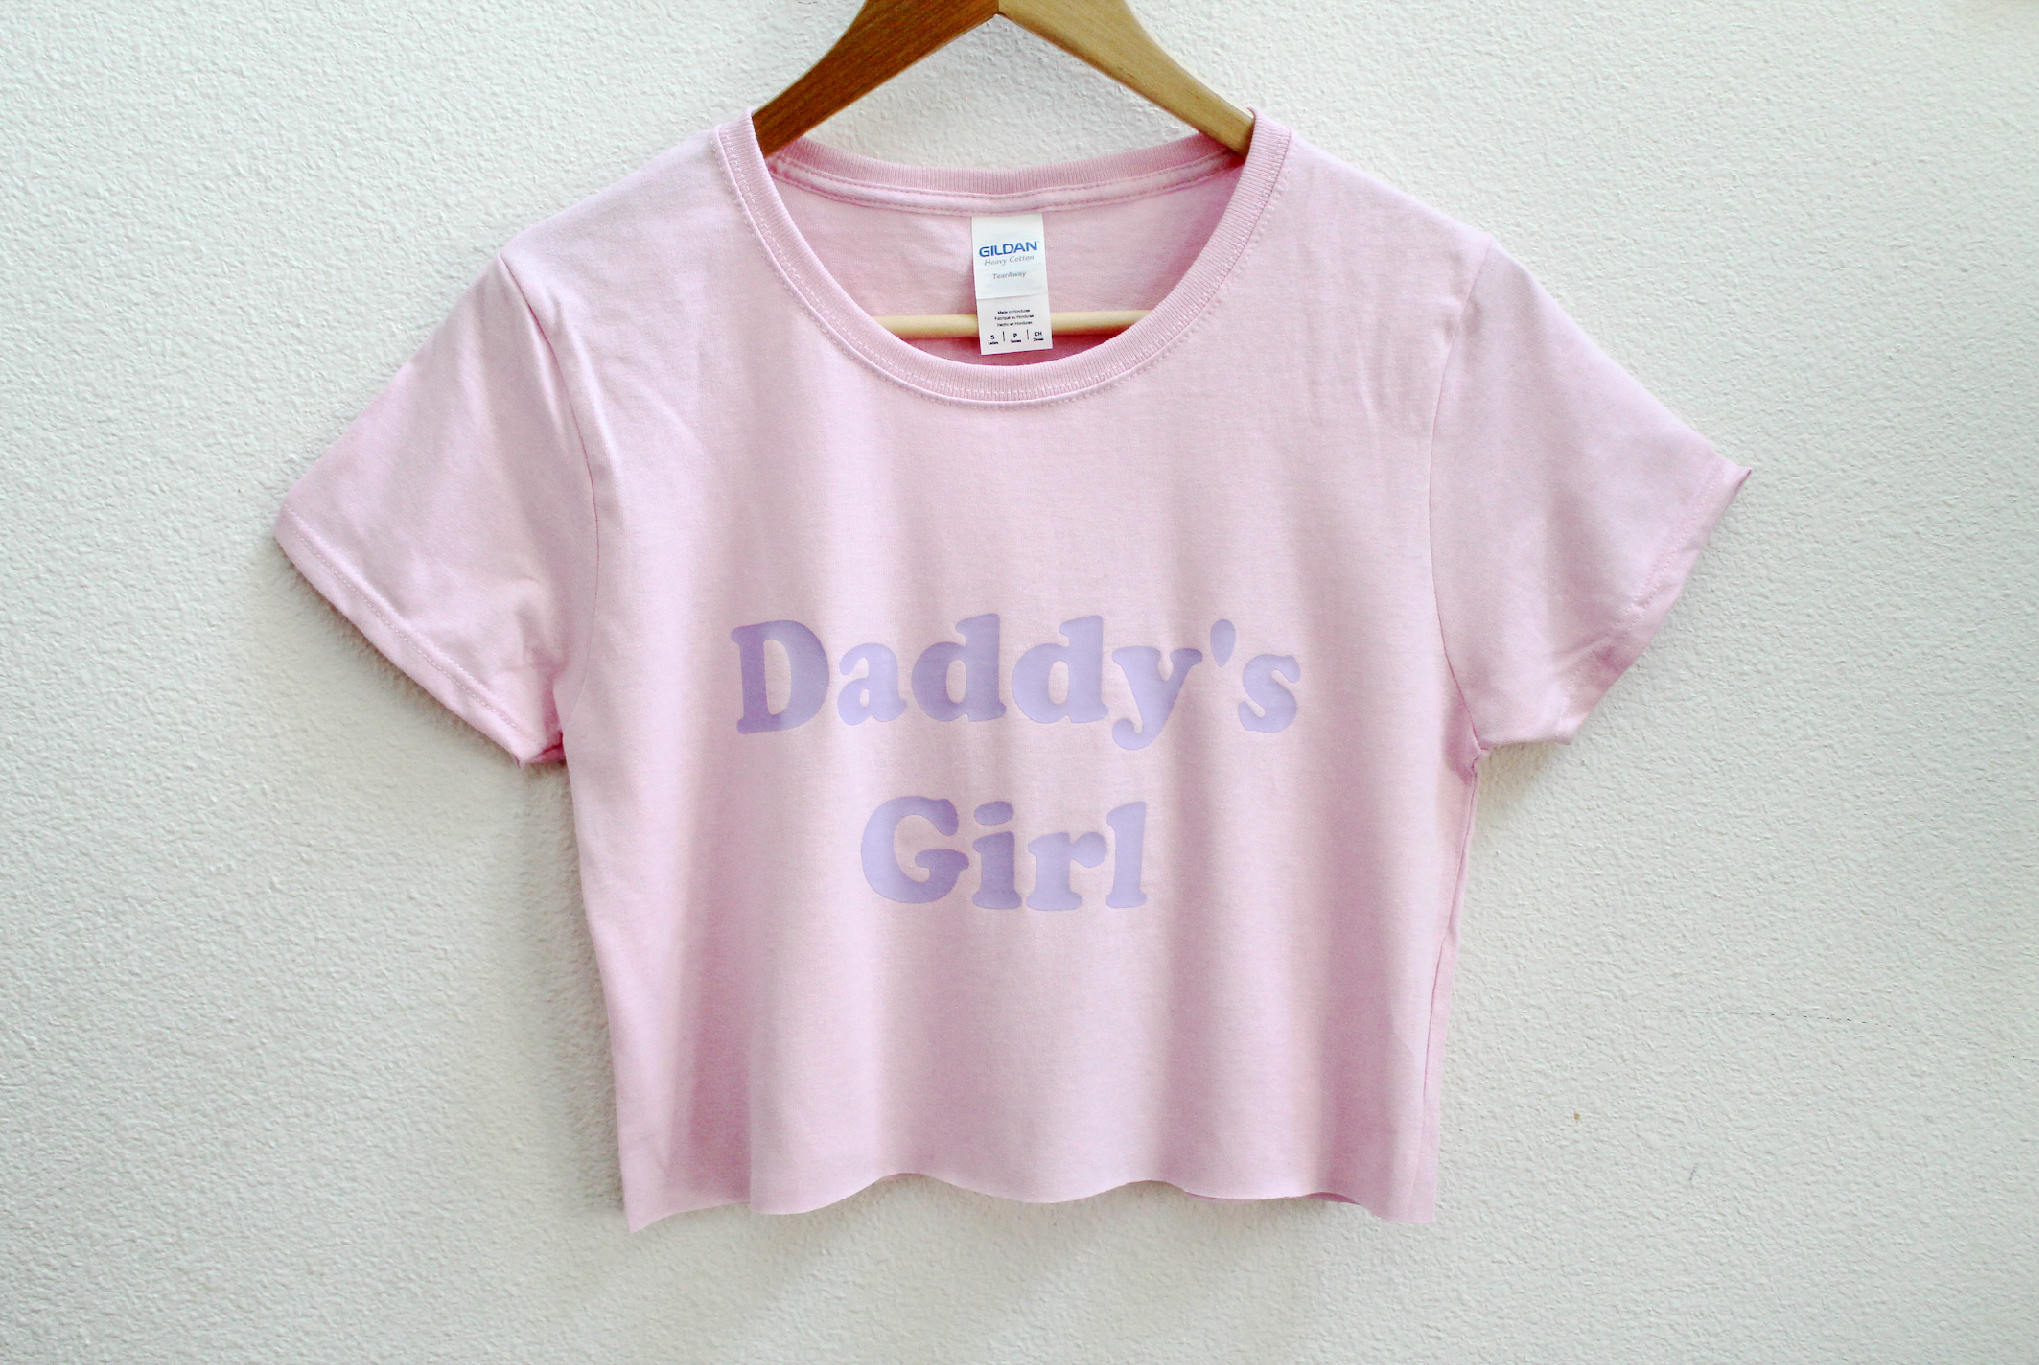 Daddy's Girl Pink Crop Shirt XS-3XL